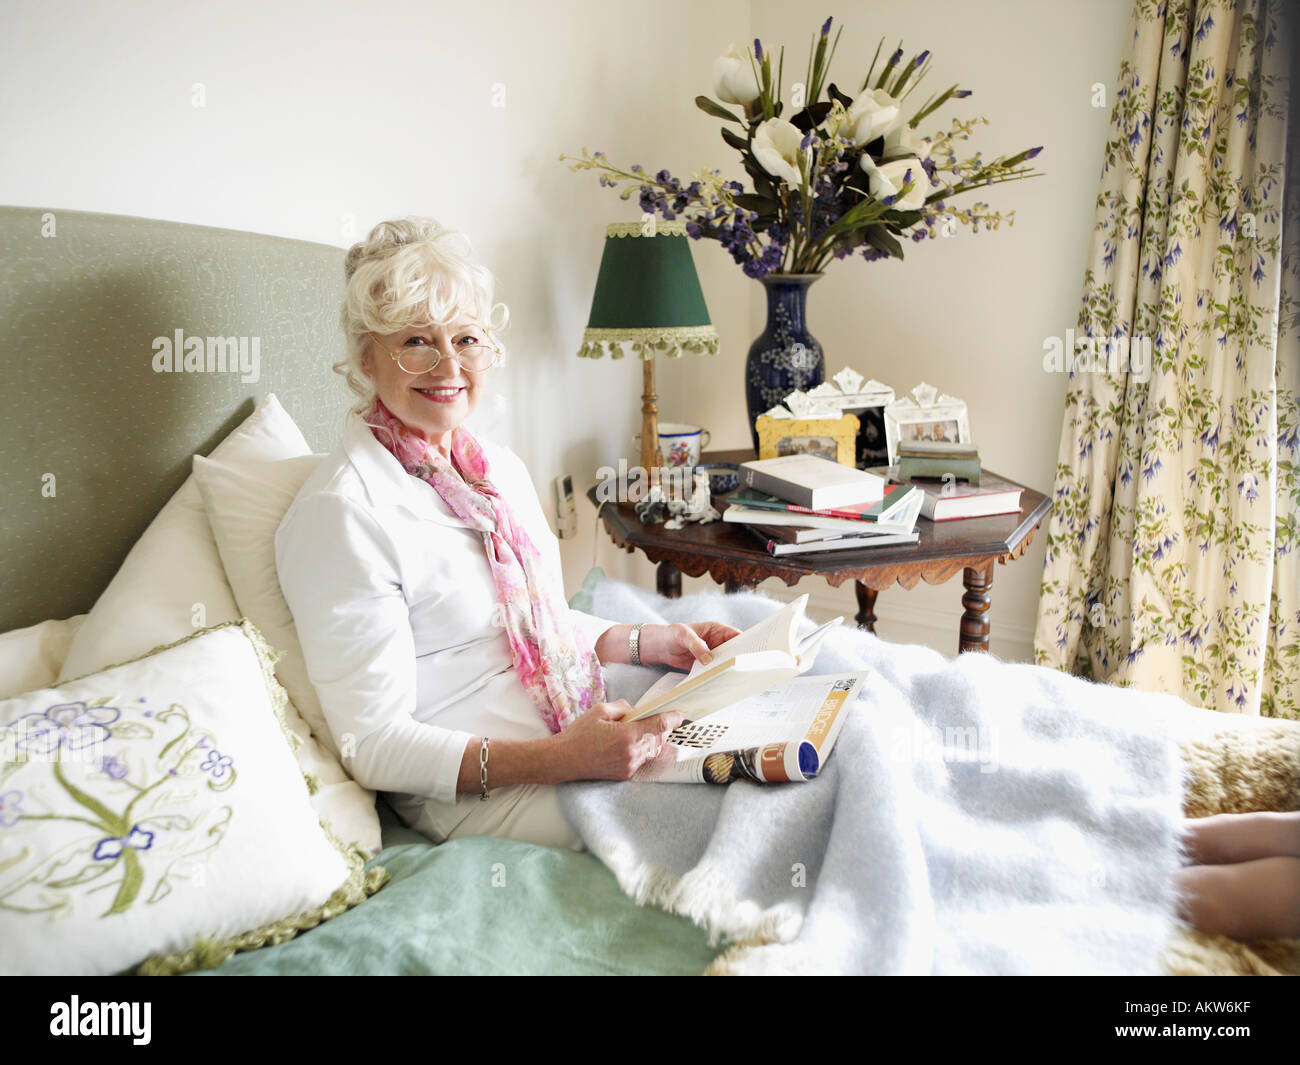 Senior woman sitting on bed, reading book Stock Photo